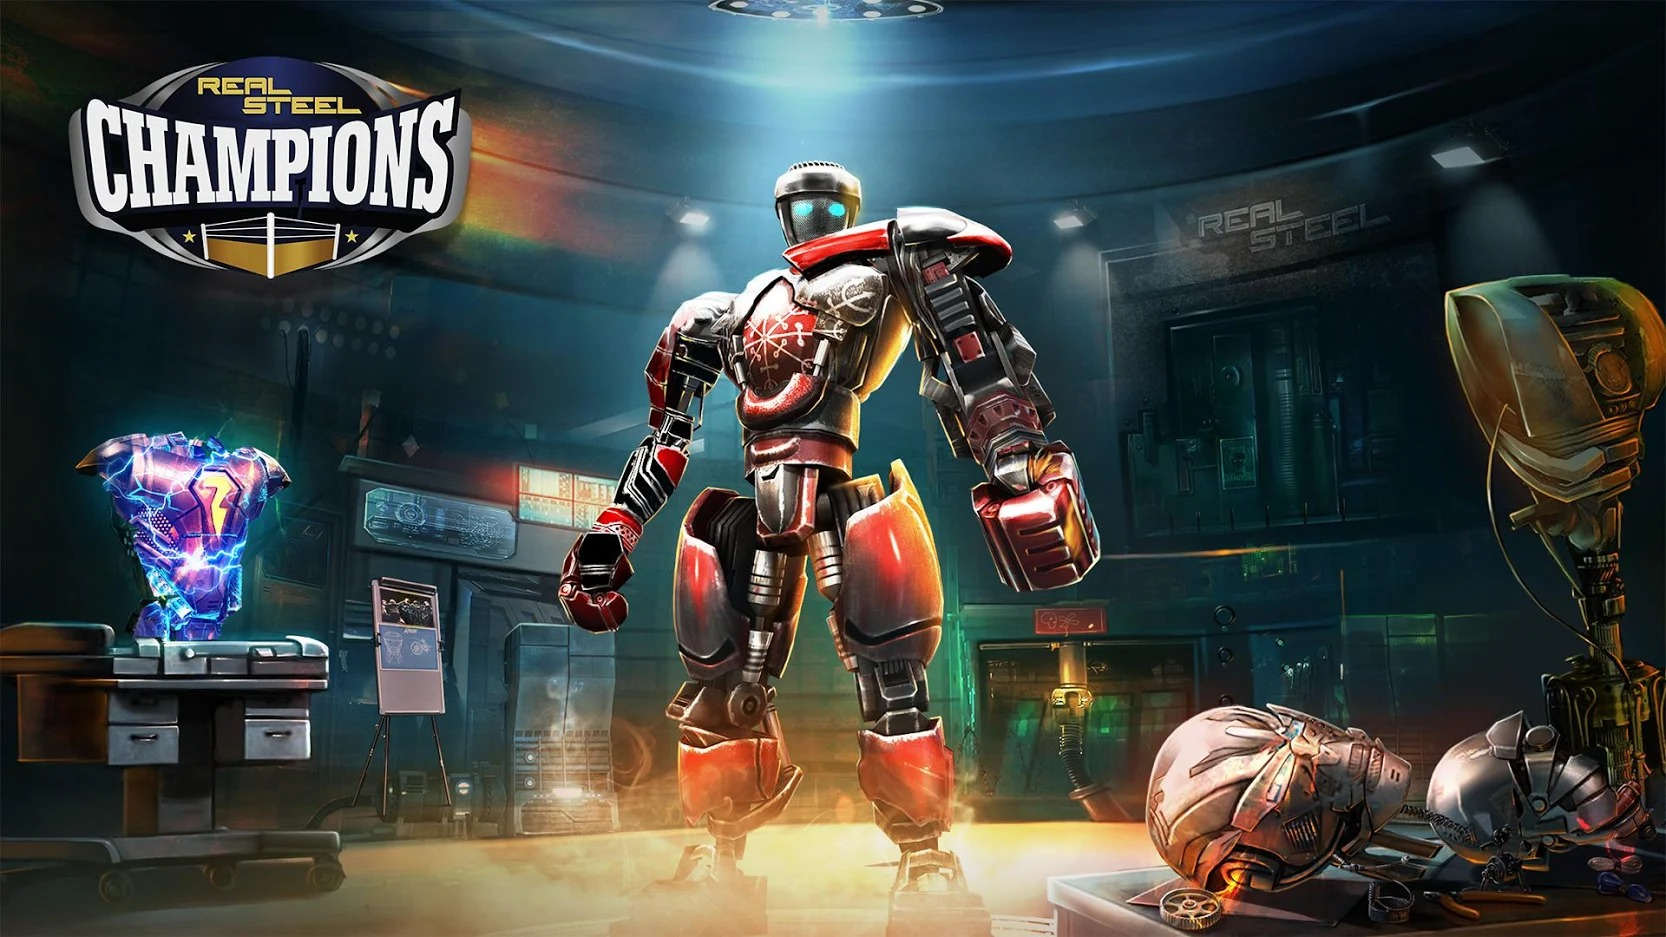 Real Steel Boxing Champions cover